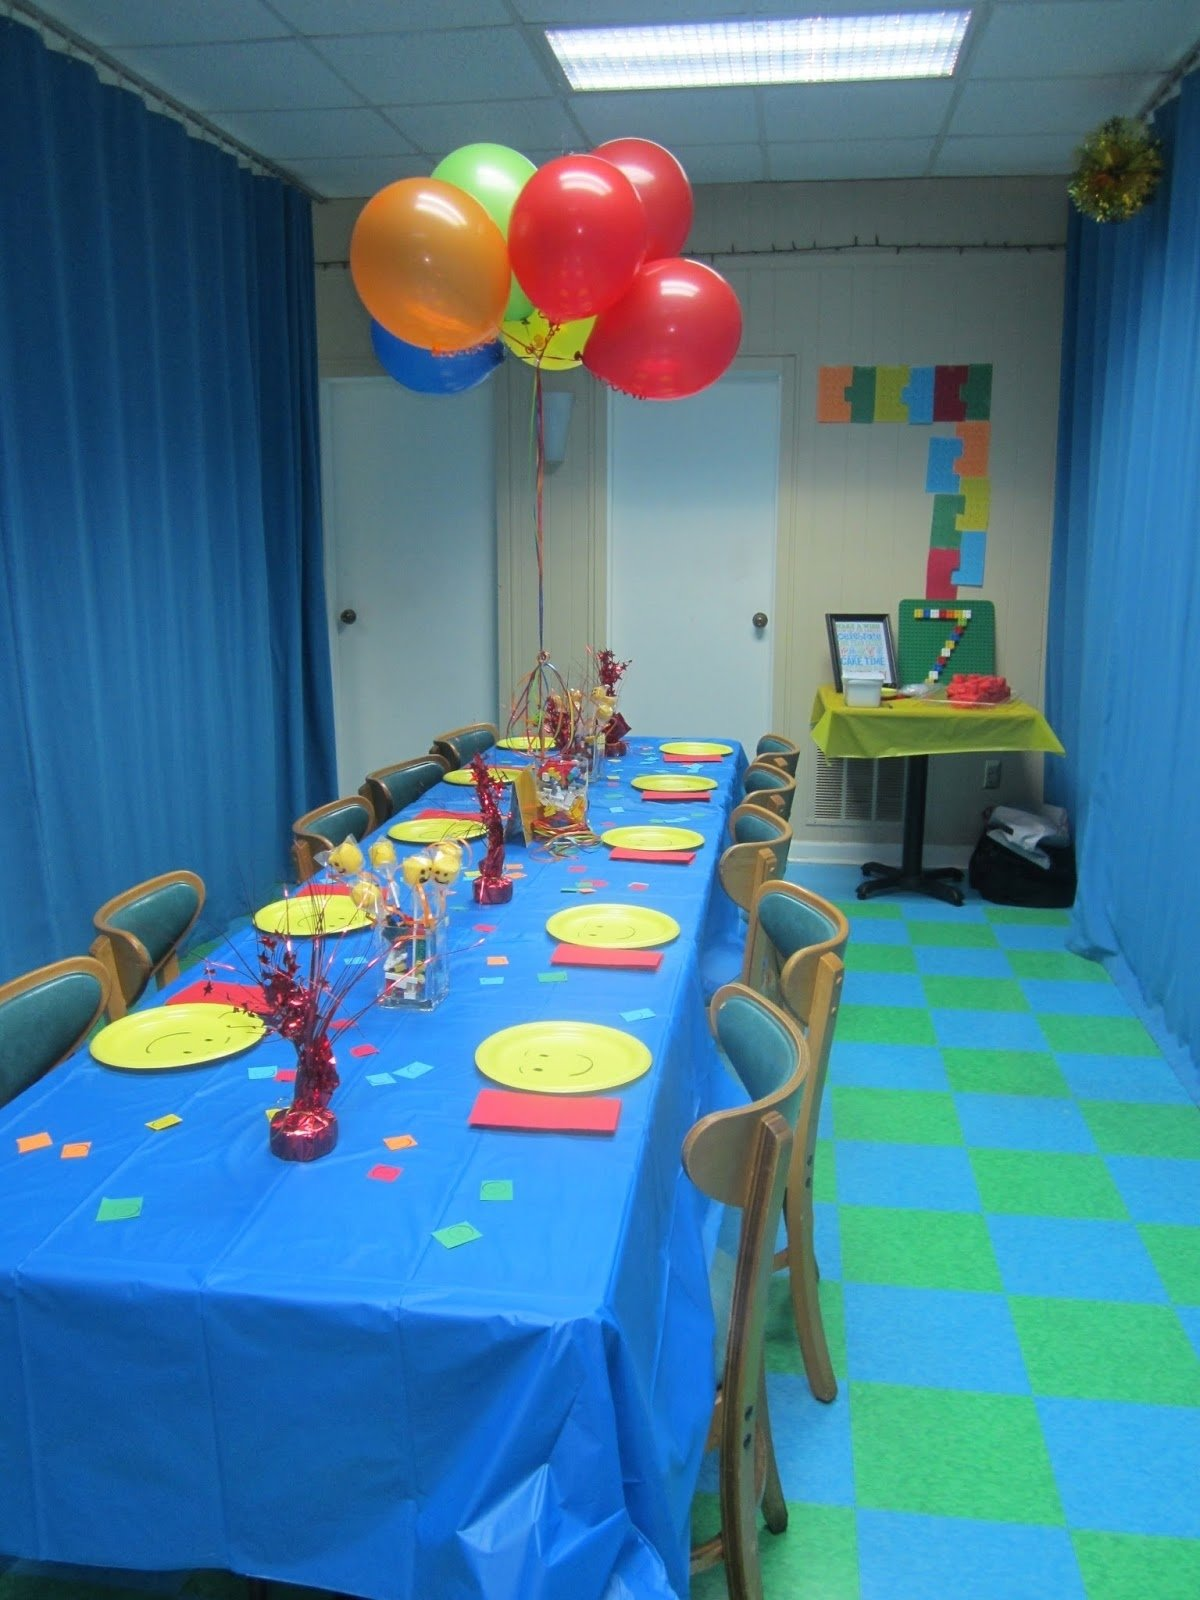 10 Pretty Birthday Ideas For 1 Year Old Boy Cute Party Entertainment